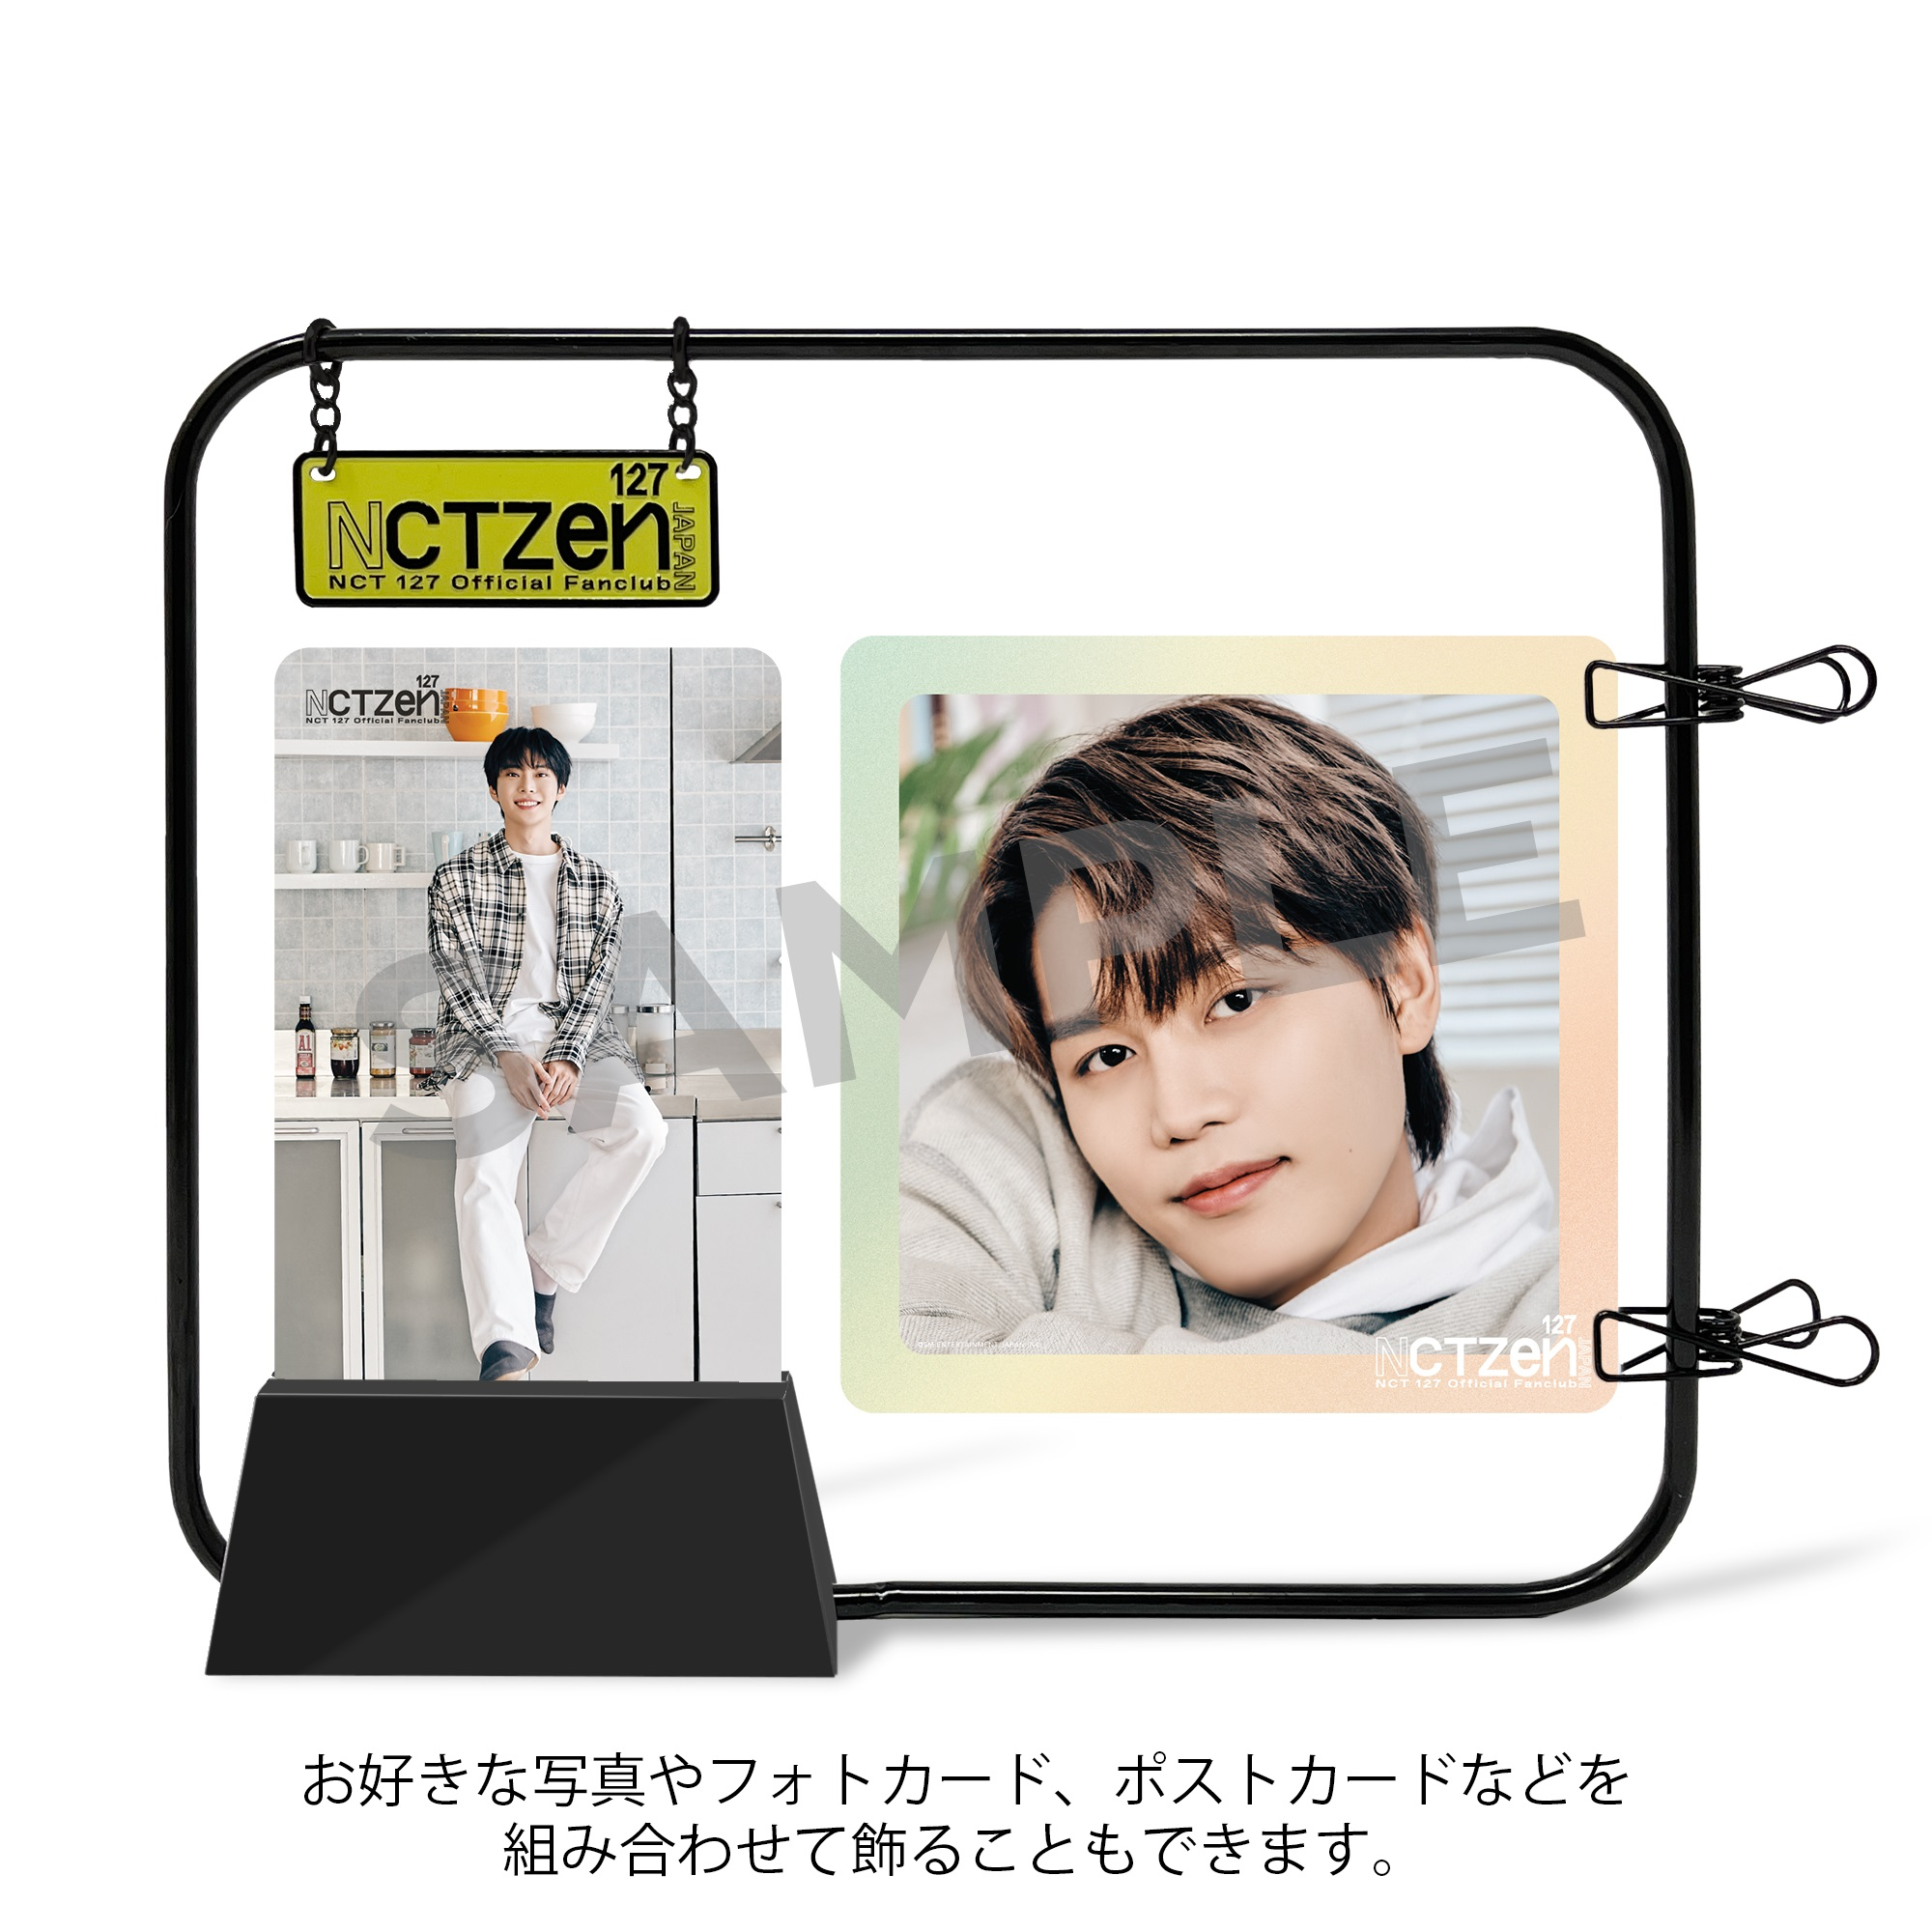 【NCT 127】『NCT 127 OFFICIAL BOOK Vol.4』グッズを、メンバー別に詳しく紹介!_2_5